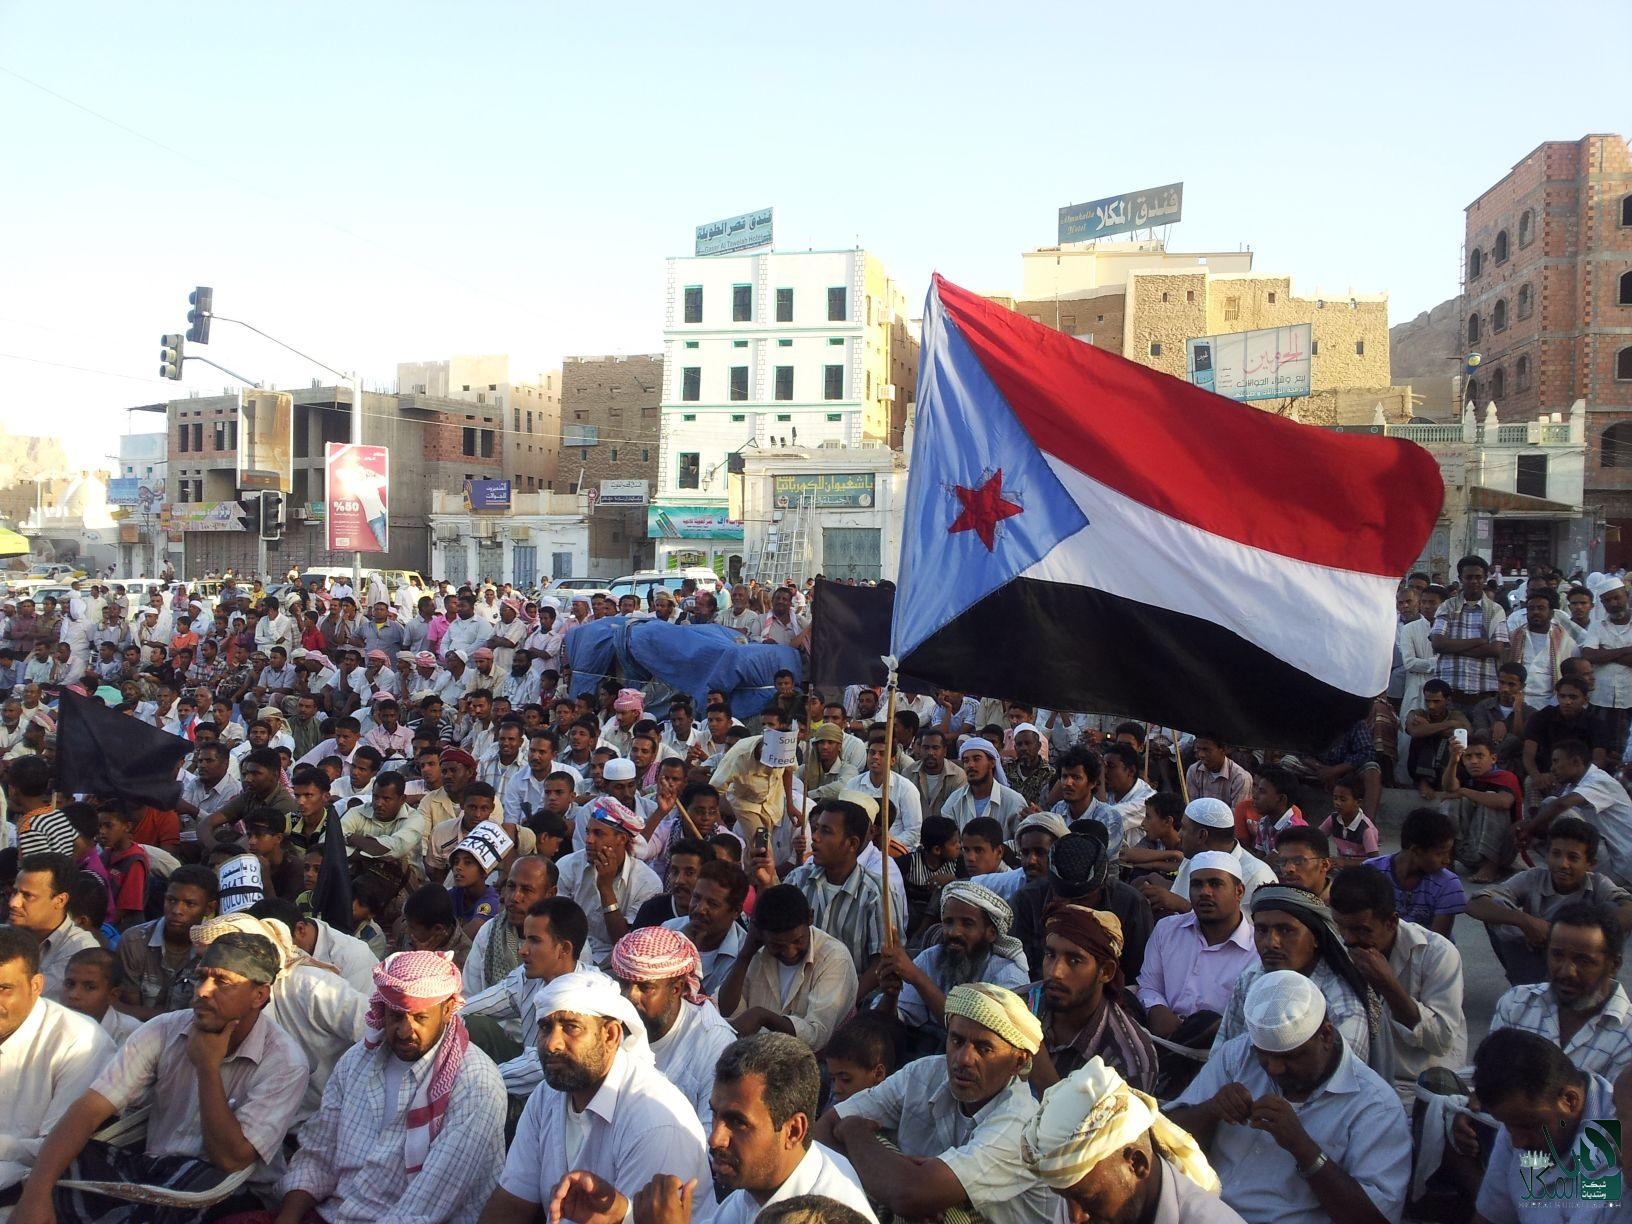 Members of the southern movement (Hirak) raise the separatist flag of South Yemen